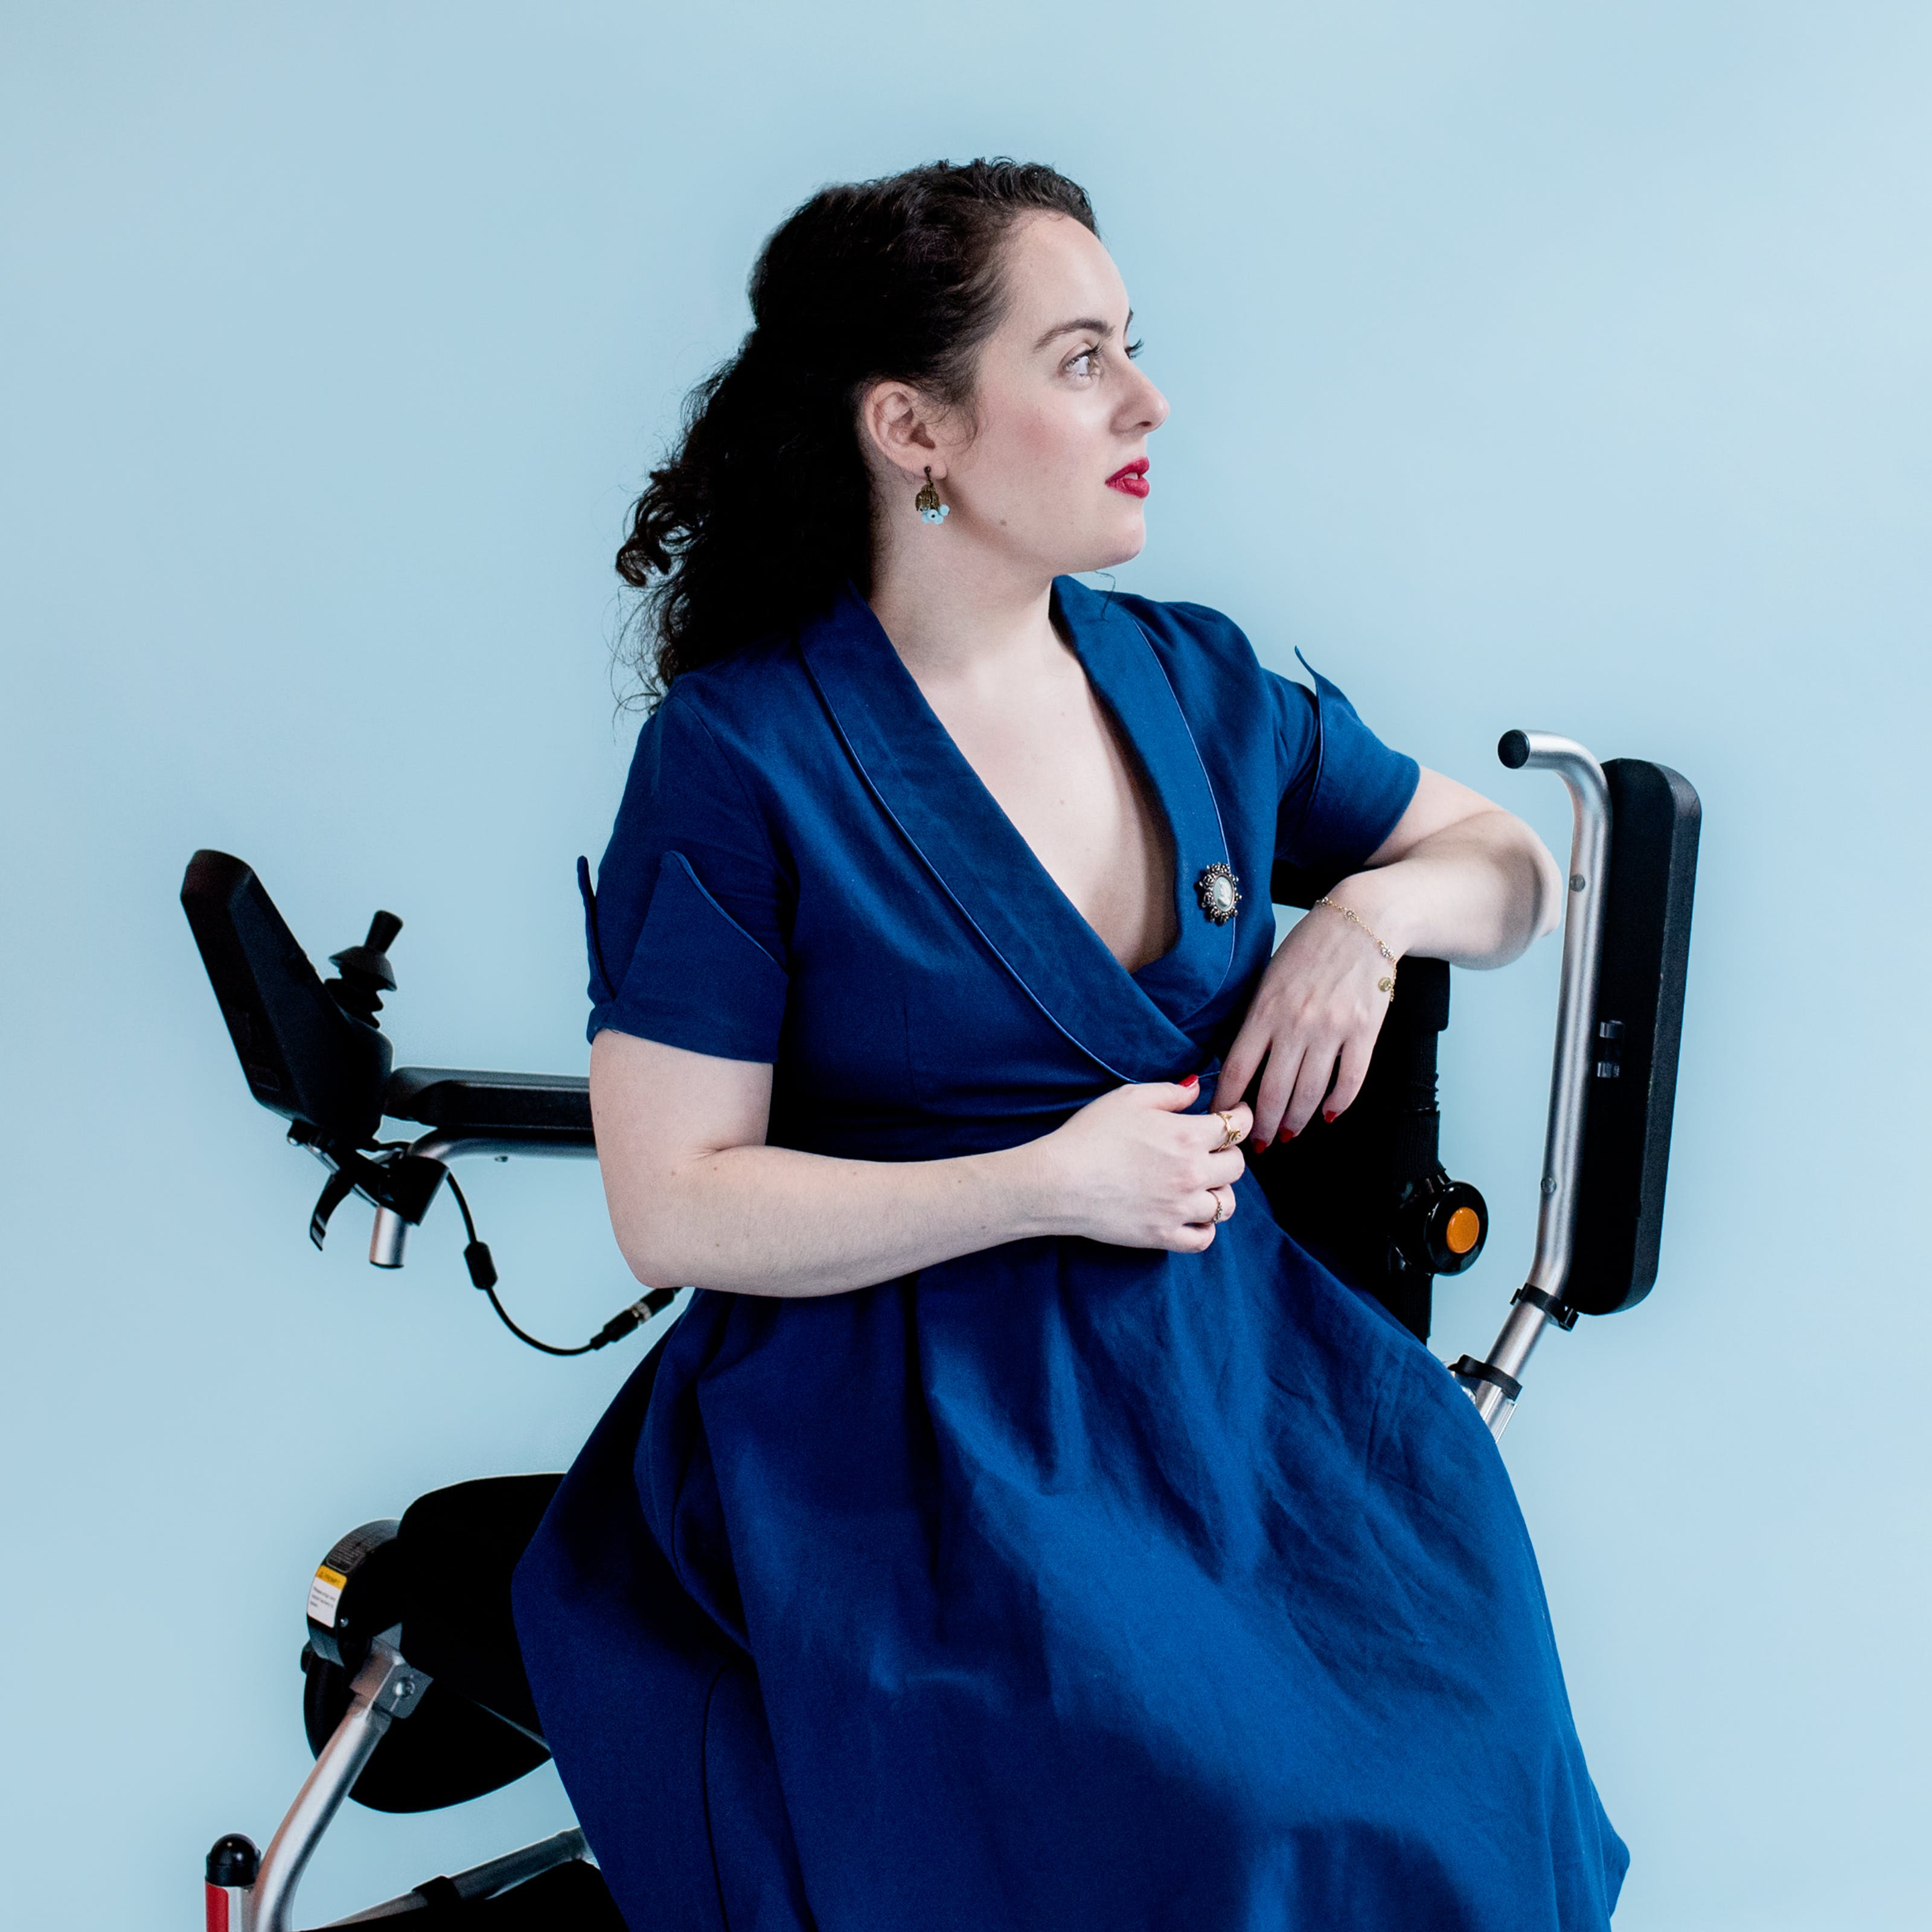 Photograph of a young woman in a blue dress with a broach sitting side-on in her wheelchair against a light blue background. She is looking off to the right of camera, face in profile.